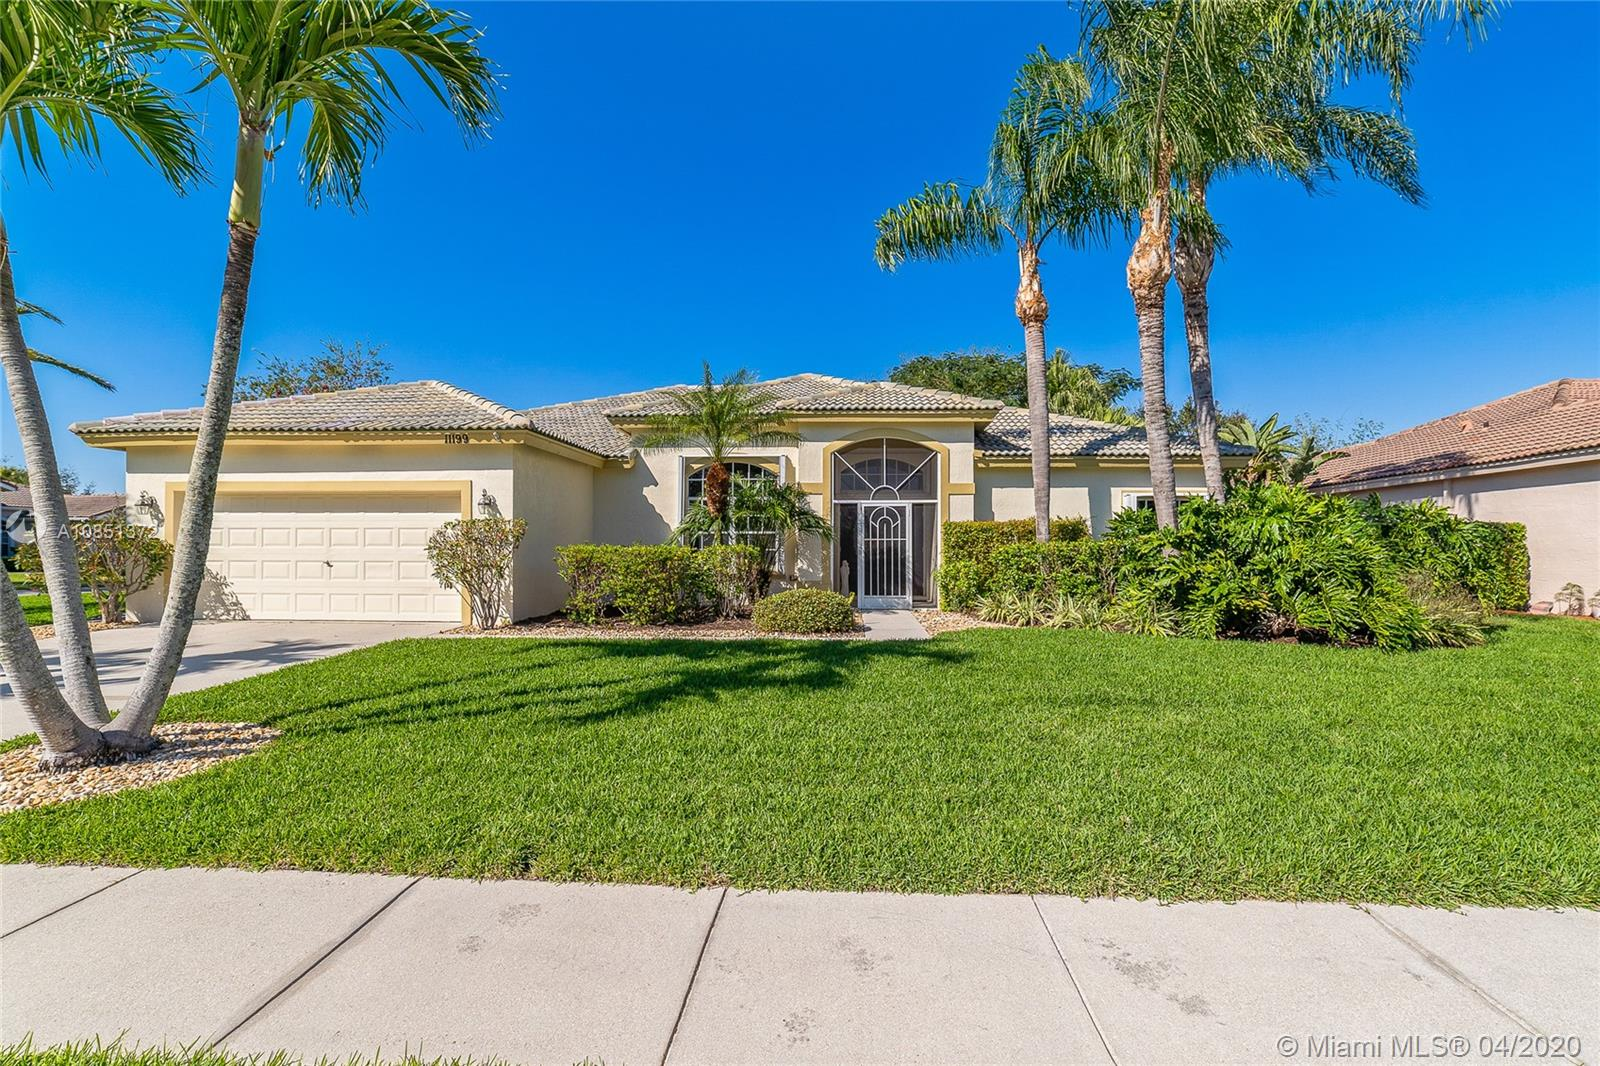 "Impeccably cared for, this lusciously landscaped 4 bedroom home located in the highly desirable Grand Isles in Wellington boast 42"" kitchen cabinetry, newer refrigerator, eat in kitchen, volume ceilings, split floor plan, with very spacious rooms. Tastefully painted in soft colors, beautiful lighting fixtures and window treatments. Exterior features a massive corner lot, huge screened in covered patio, fire pit, beautifully landscaped, and very private, the yard has been recently re-sodded. Guard gated community with all the amenities, low hoa fee, great pubic schools from k-12 and very close proximity to the equestrian grounds."